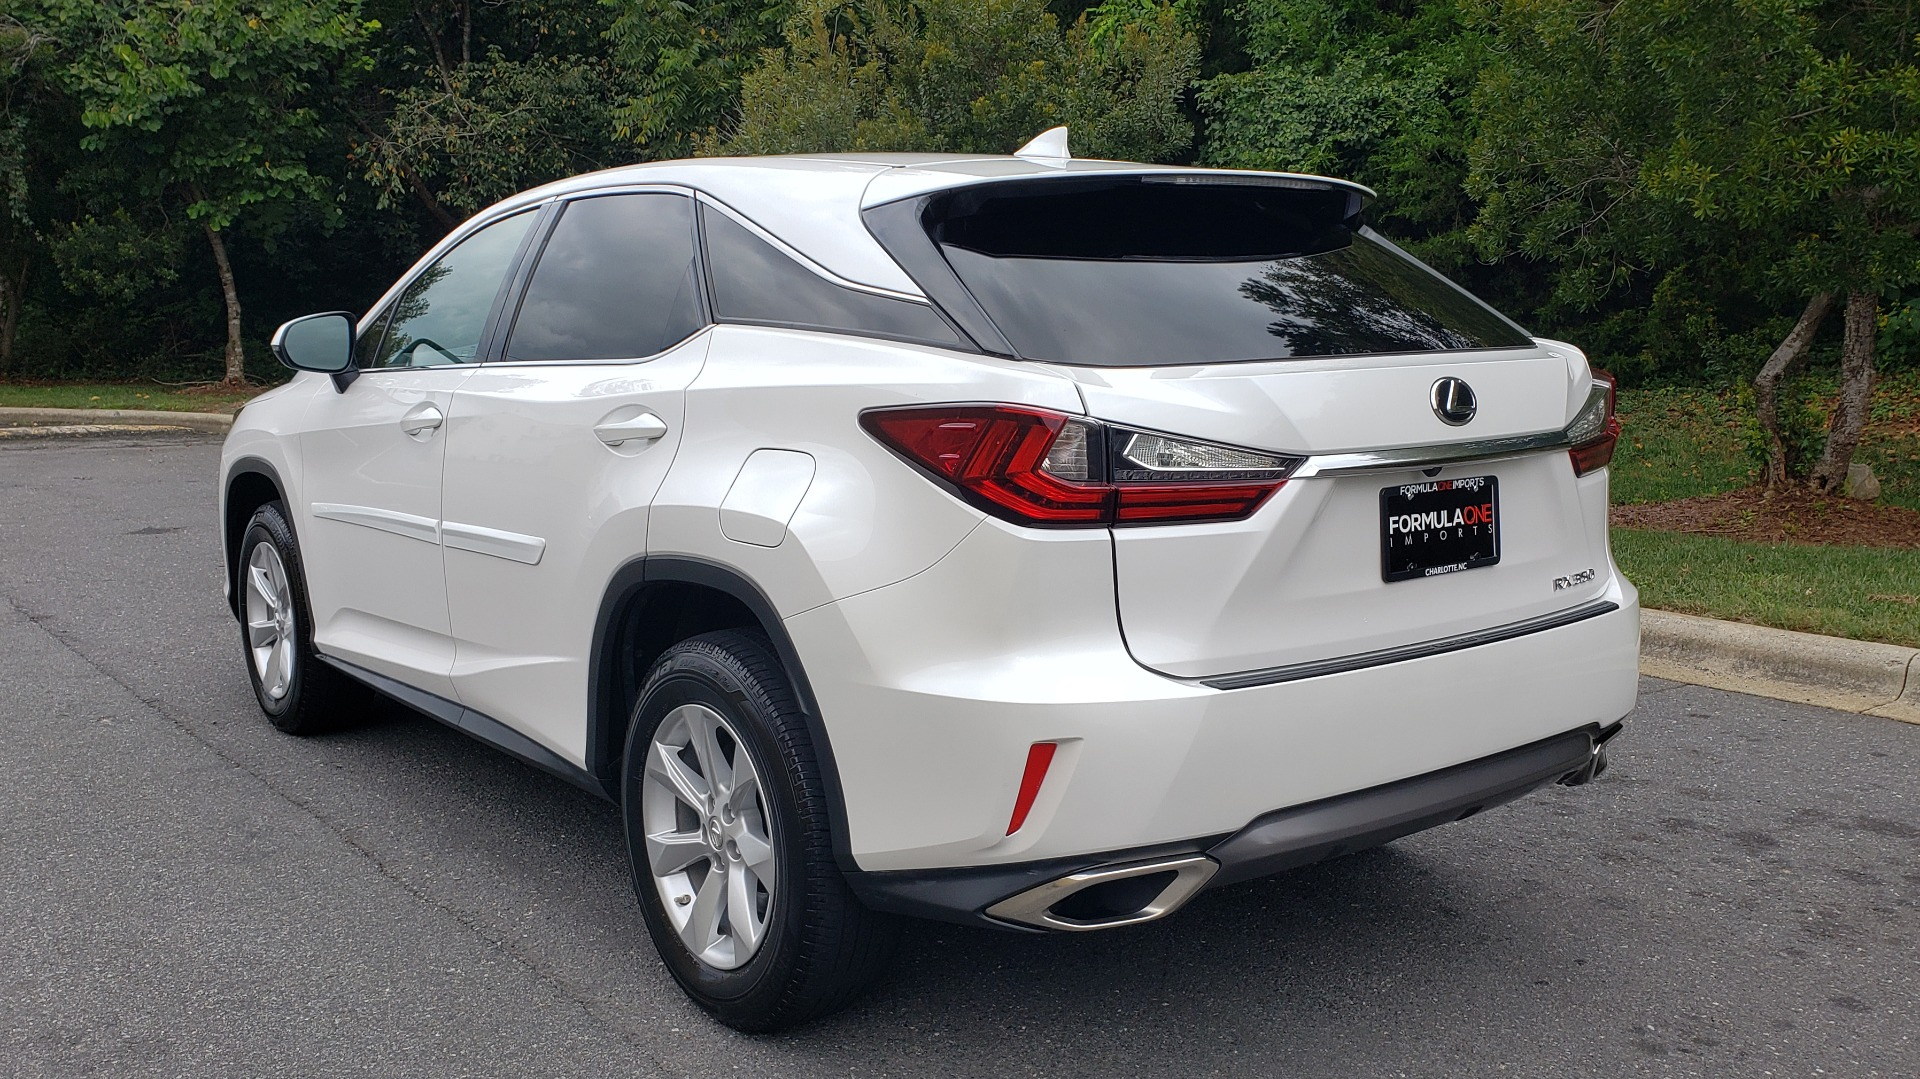 Used 2016 Lexus RX 350 FWD / 4-DR / 3.5L V6 / 8-SPD AUTO / LEATHER / REARVIEW for sale $29,795 at Formula Imports in Charlotte NC 28227 6